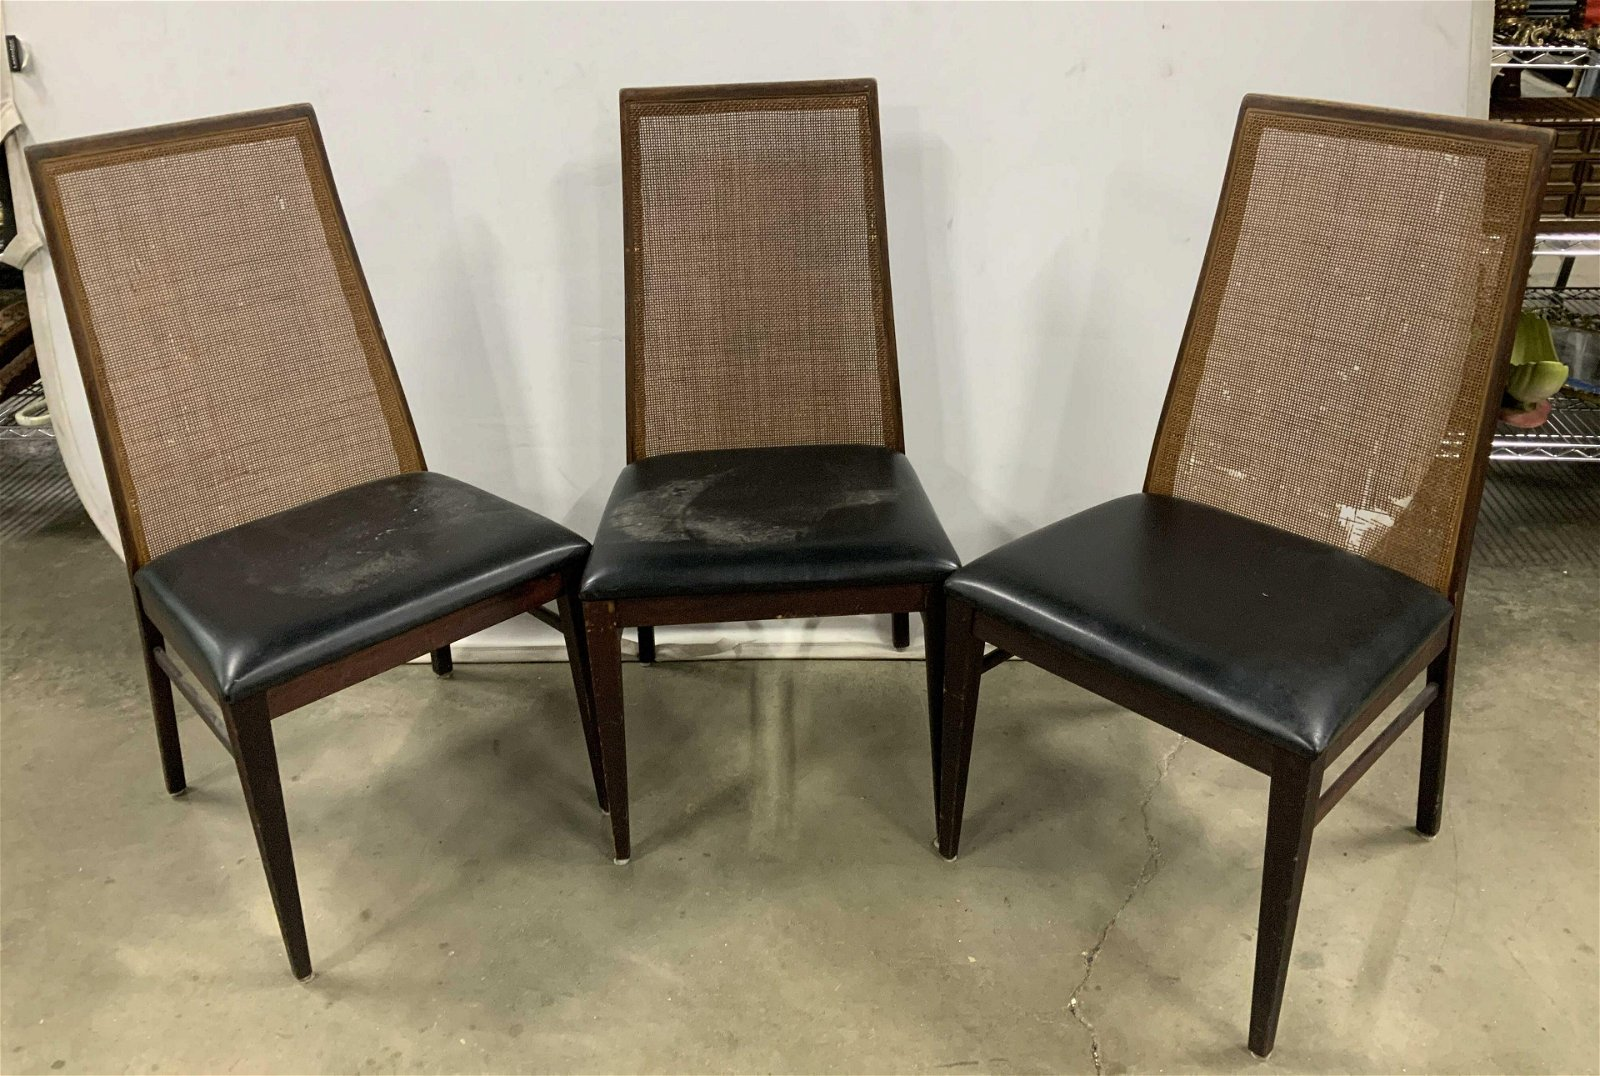 Signed Set 3 Mid Century Modern Wood Side Chairs